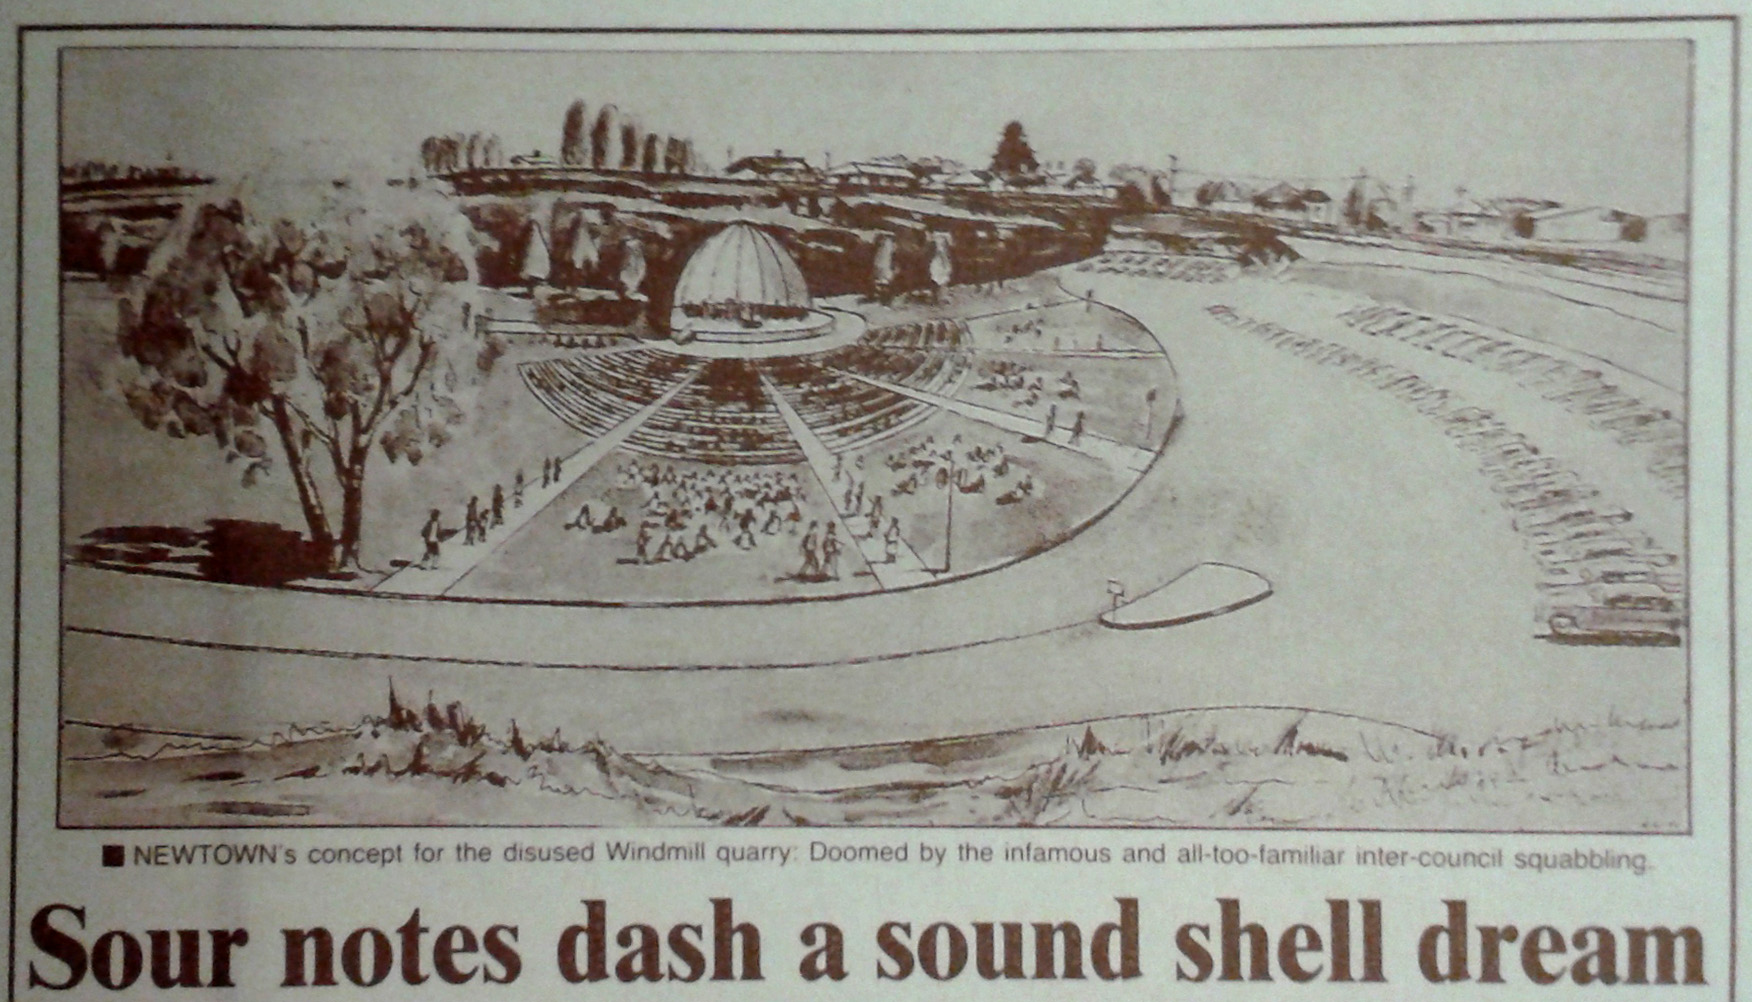 1961 proposed Sound Shell in Newtown